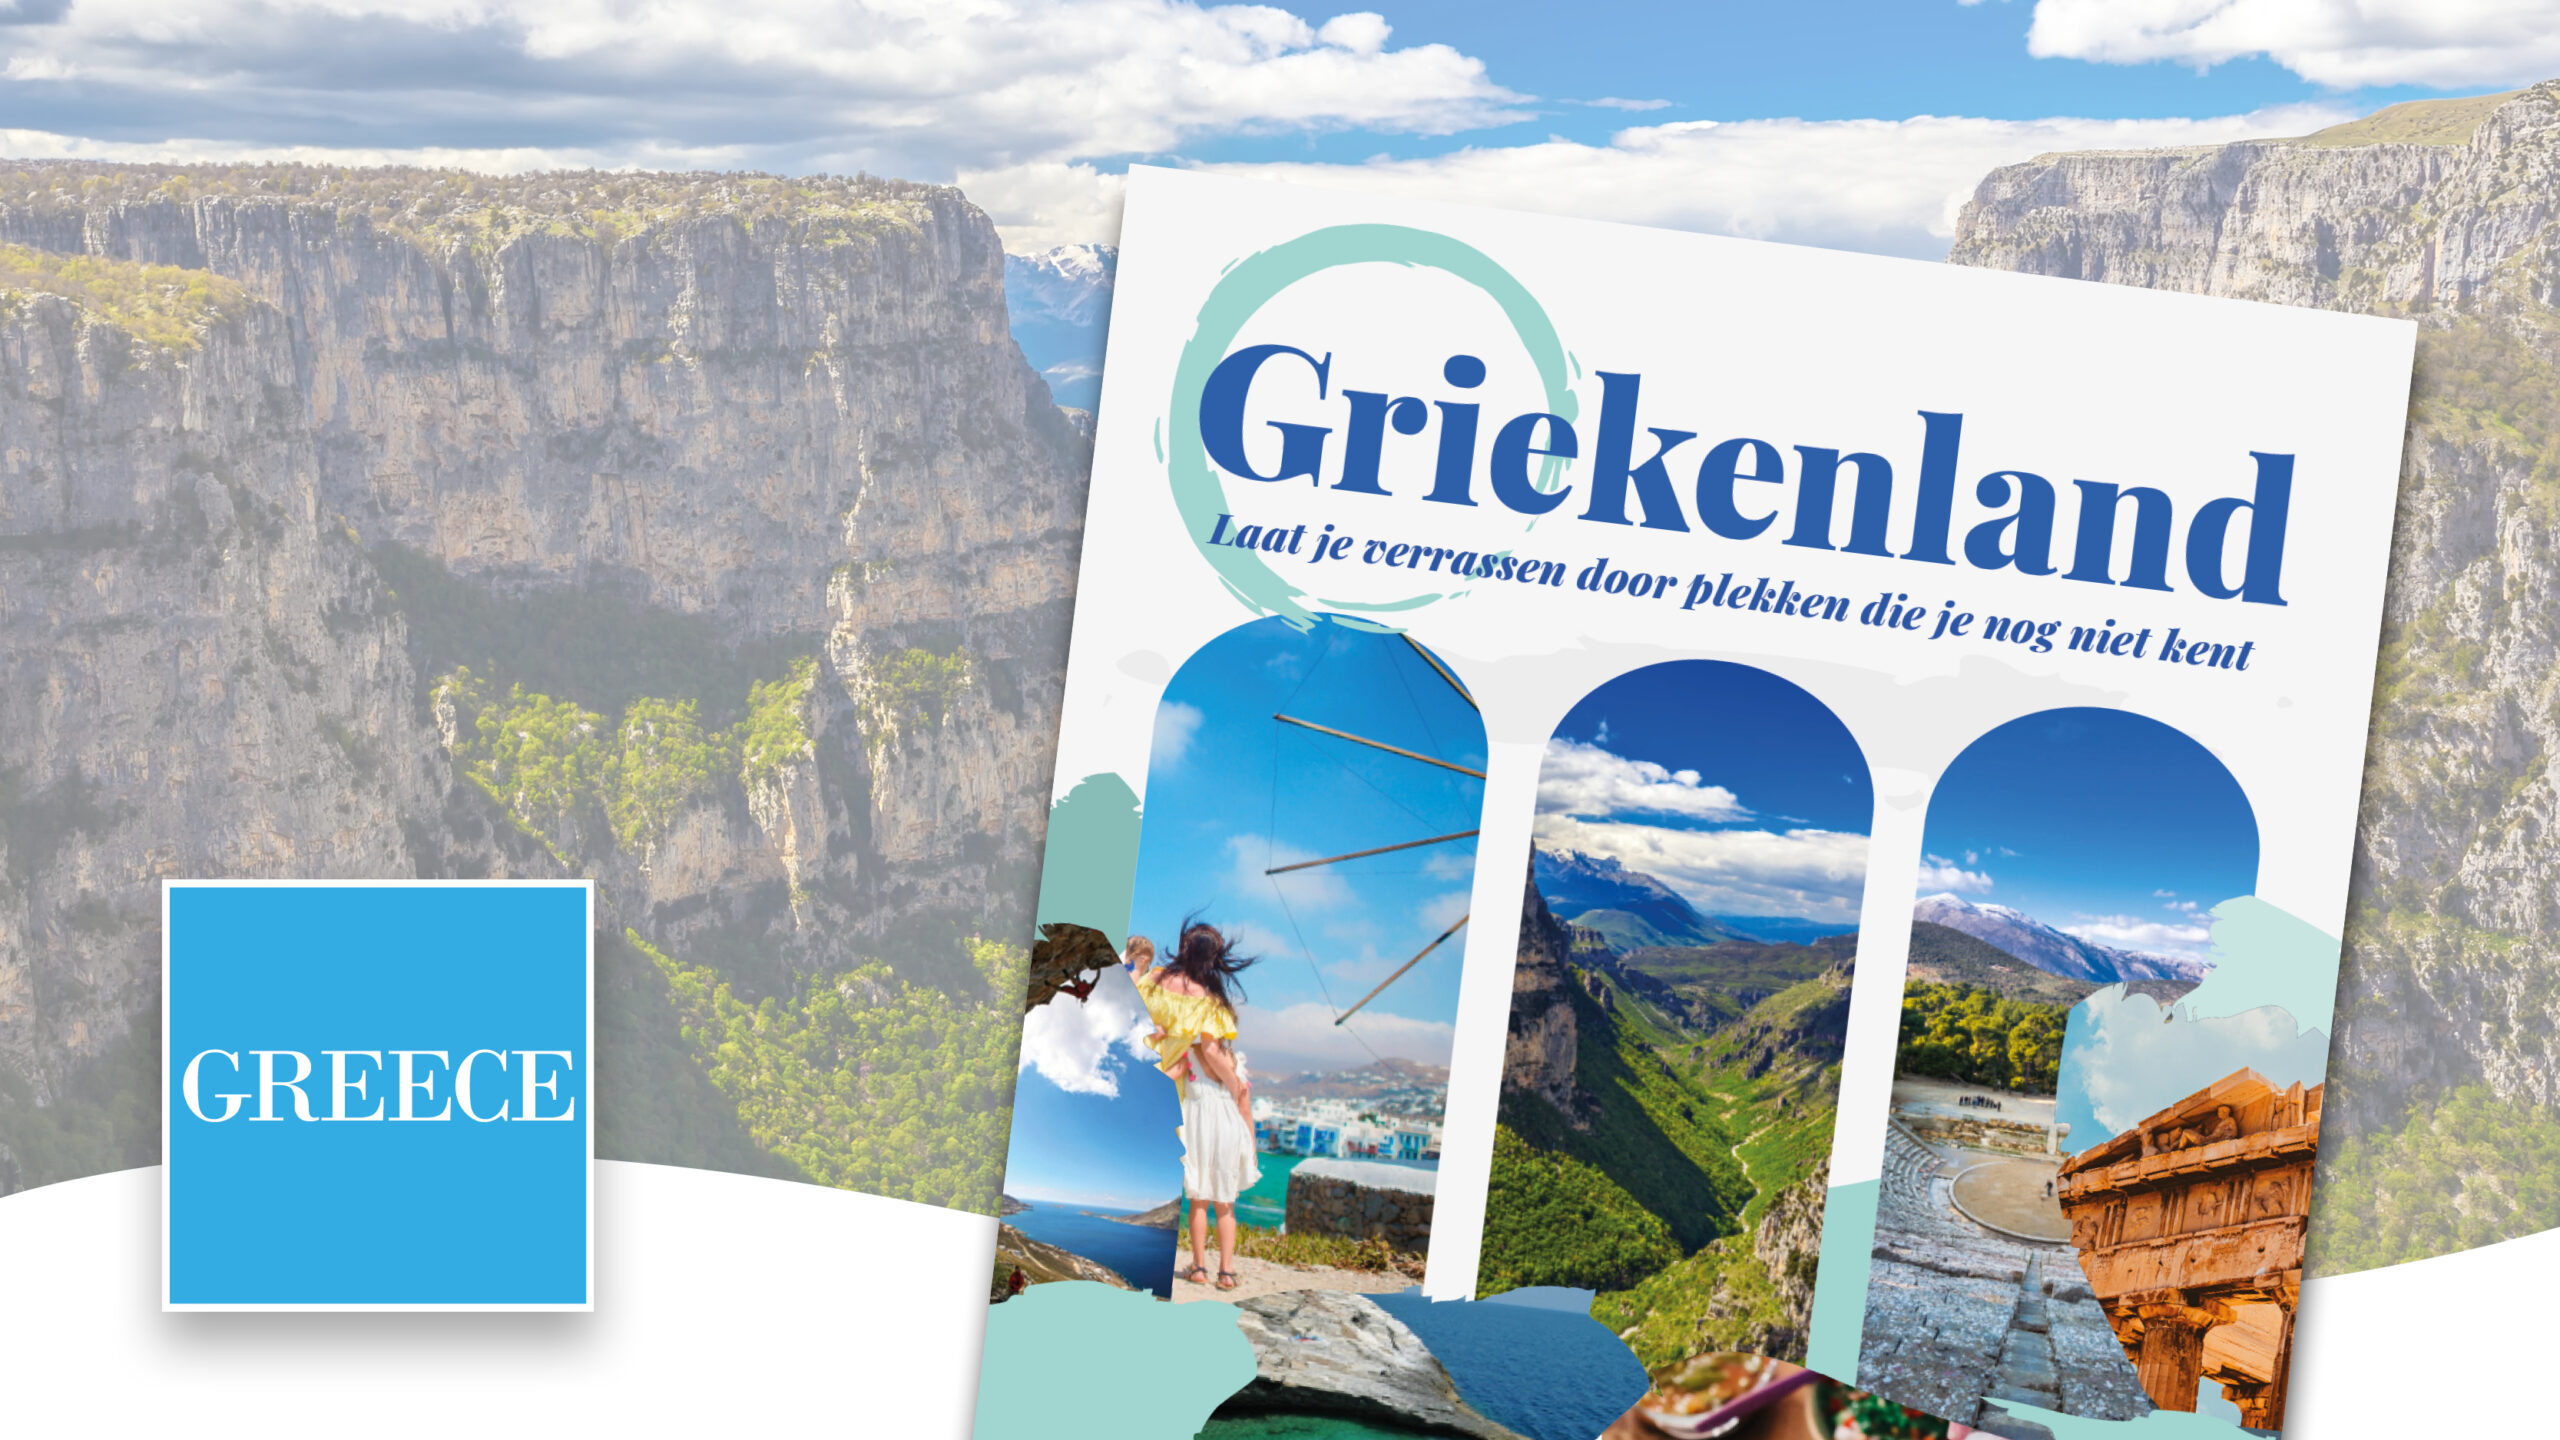 Griekenland-magazine-visual-16-9